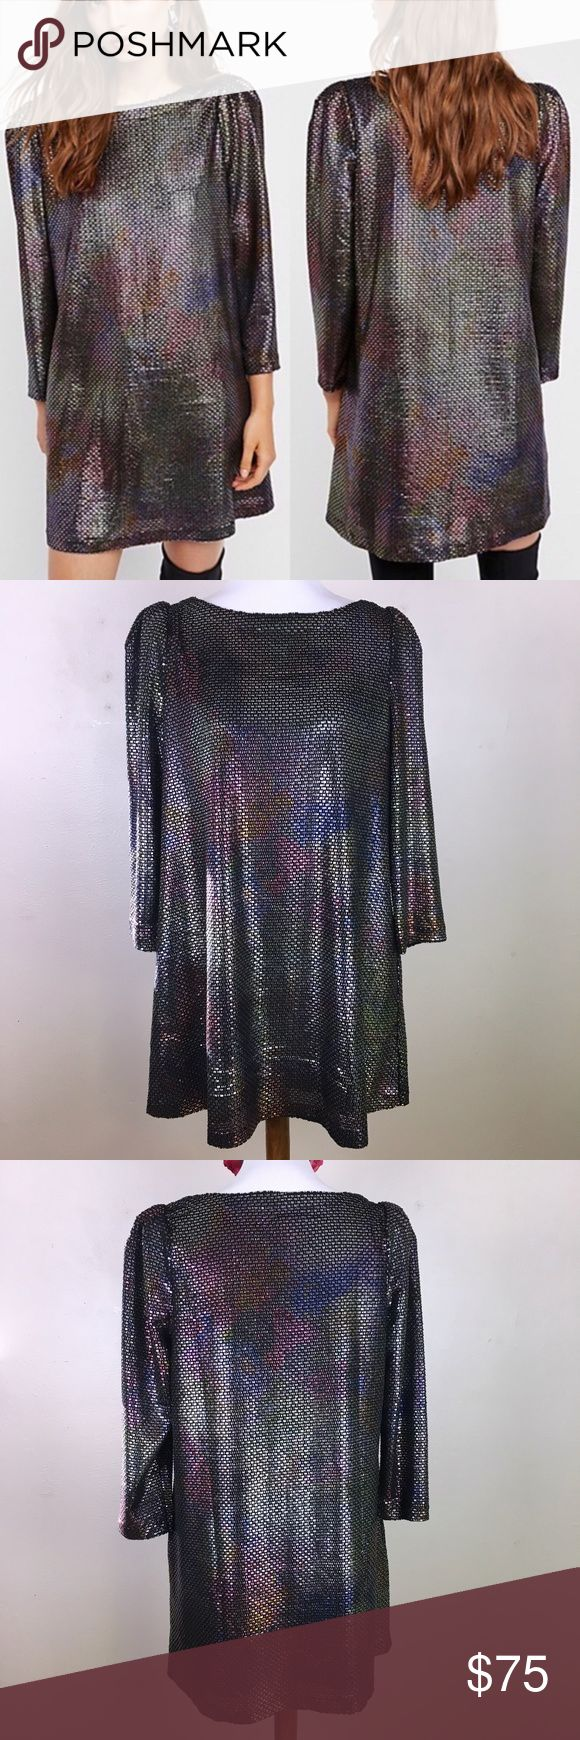 """NWT Free People Metallic Long Sleeve Sheath Dress Long sleeve metallic mini dress. NWT. Medium. Silver color with rainbow sheen. Structured shoulders and swing silhouette. Side pockets!  ▪️Pit to Pit: 21"""" ▪️Length: 34"""" ▪️Condition: NWT. Excellent condition. Free People Dresses Long Sleeve"""